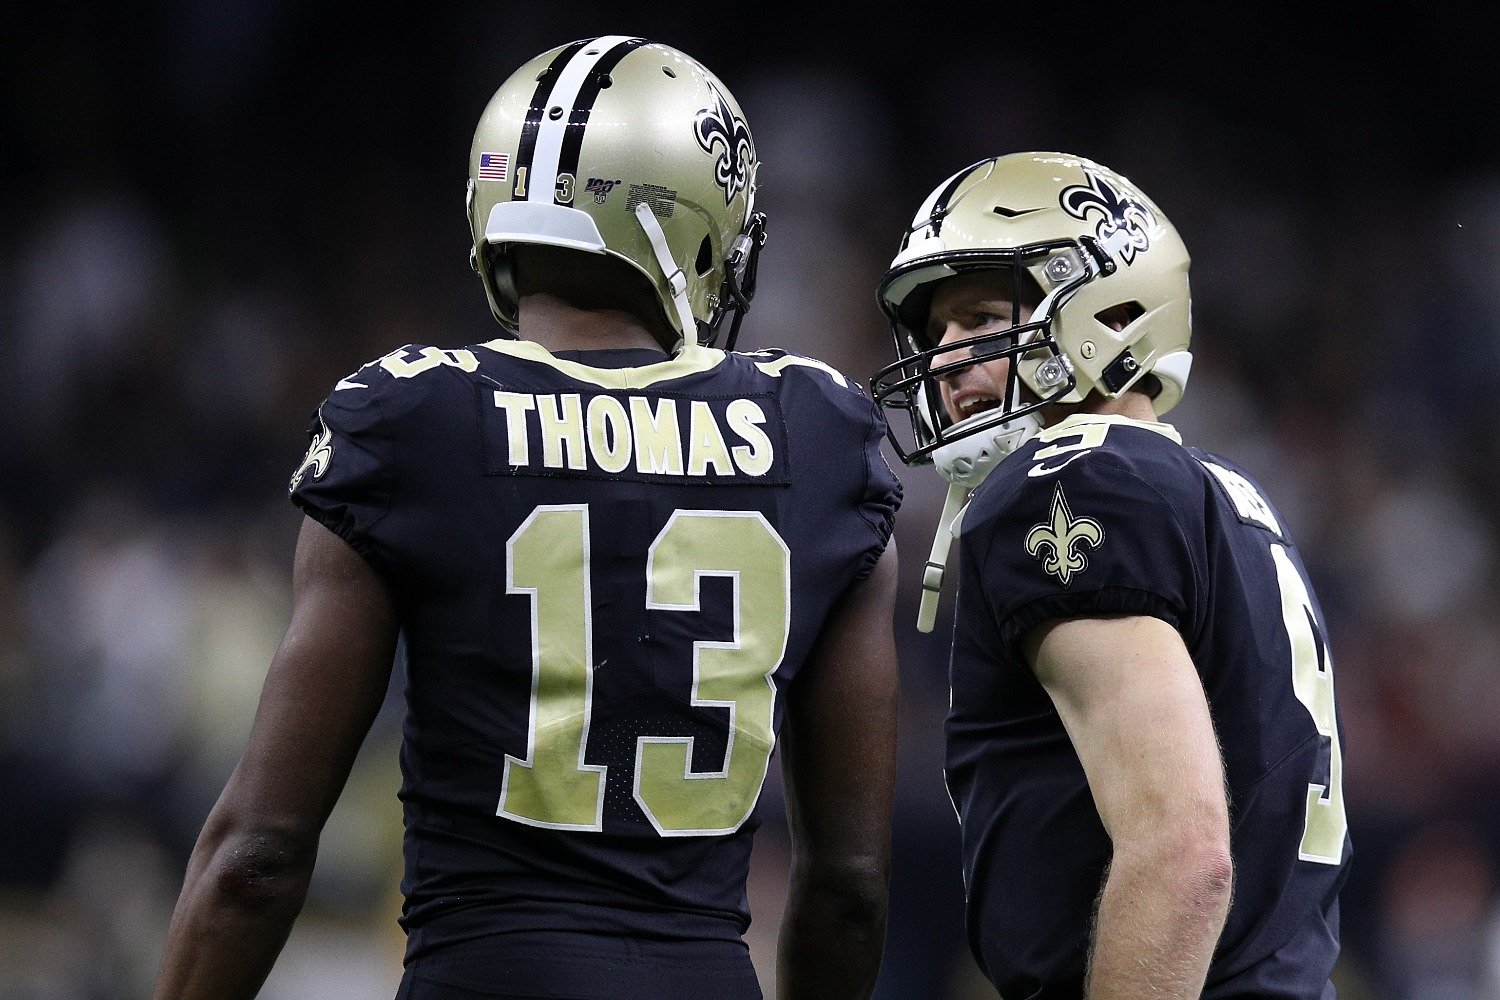 The New Orleans Saints just lost Michael Thomas for at least a few weeks due to an ankle injury.